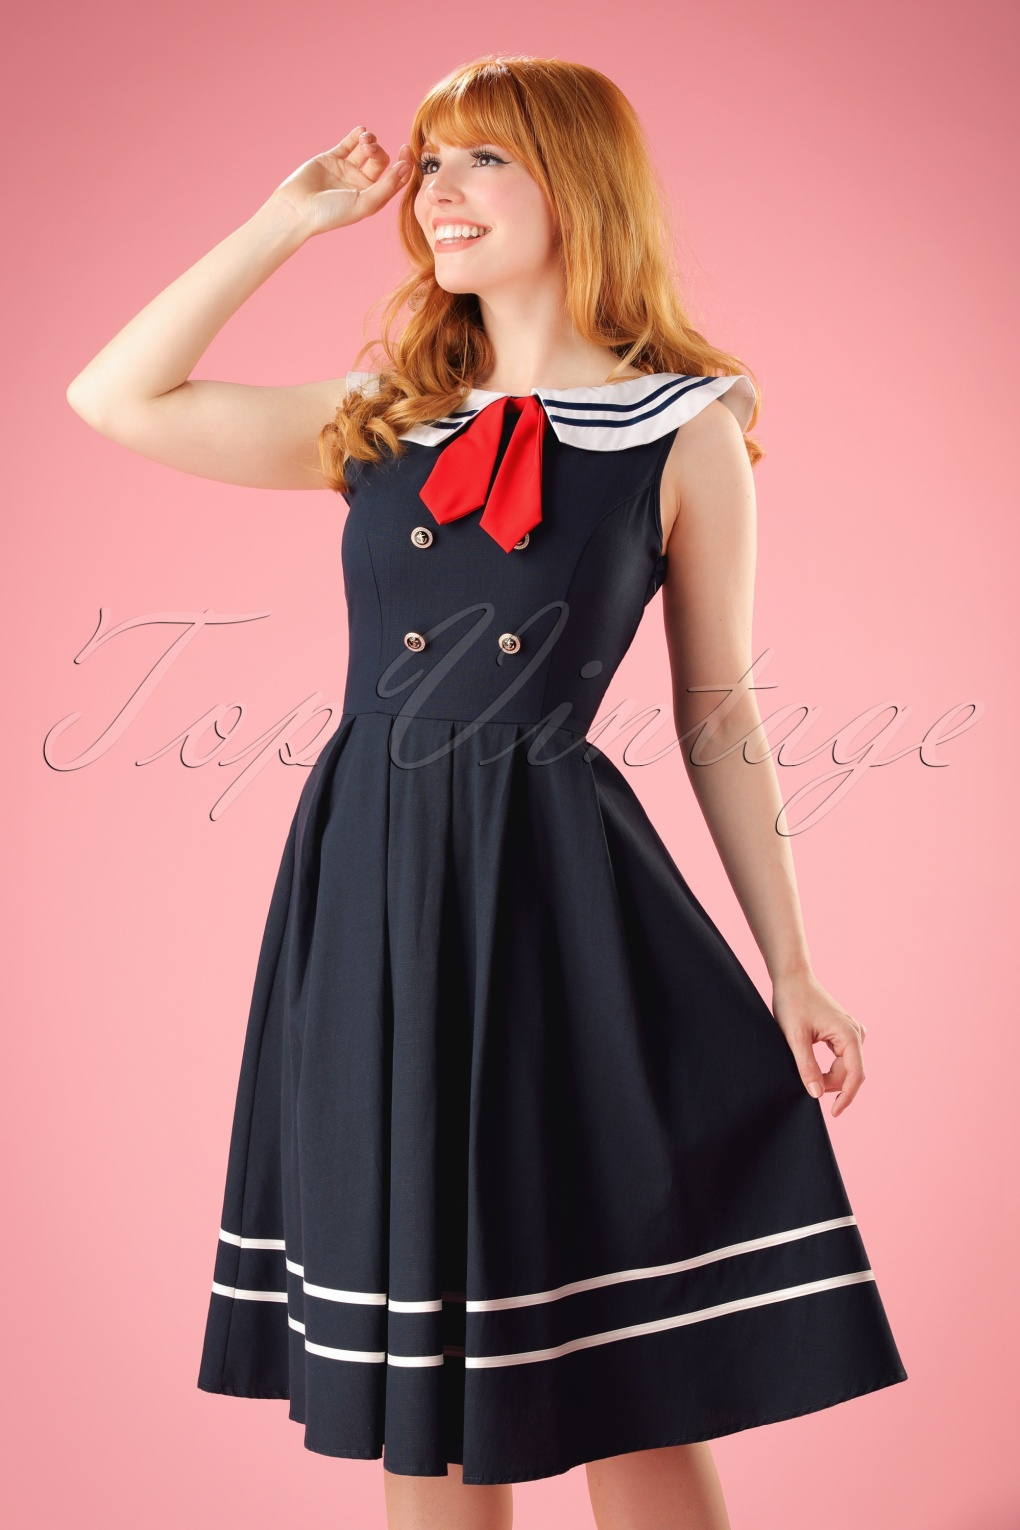 1940s Pinup Dresses for Sale 50s Aquarius Sailor Swing Dress in Navy £22.55 AT vintagedancer.com